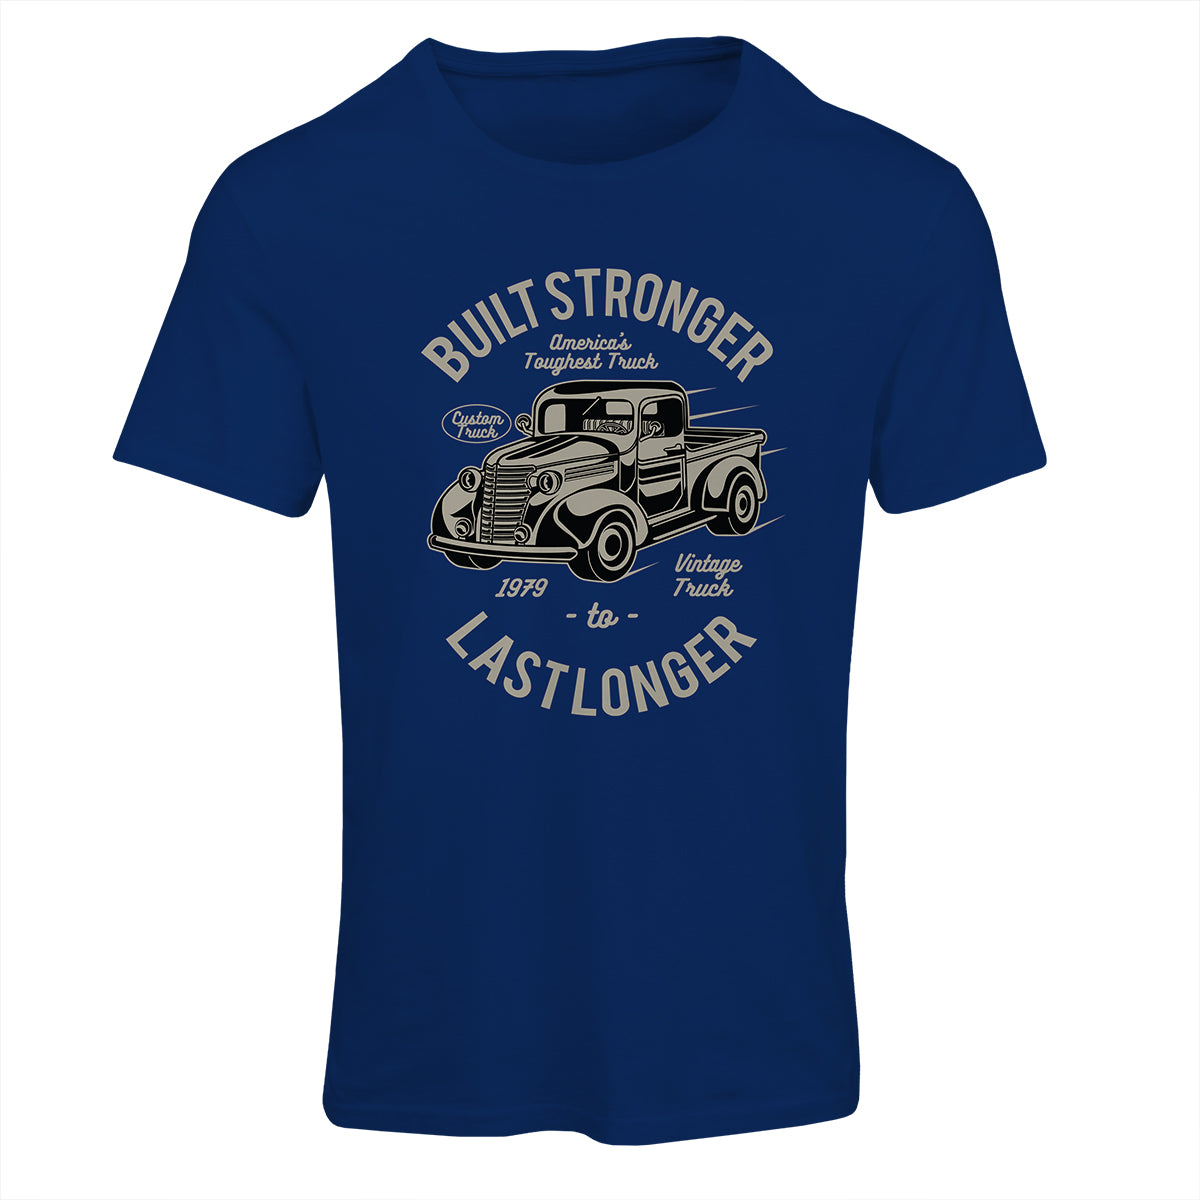 Built Stronger To Last Longer T-Shirt